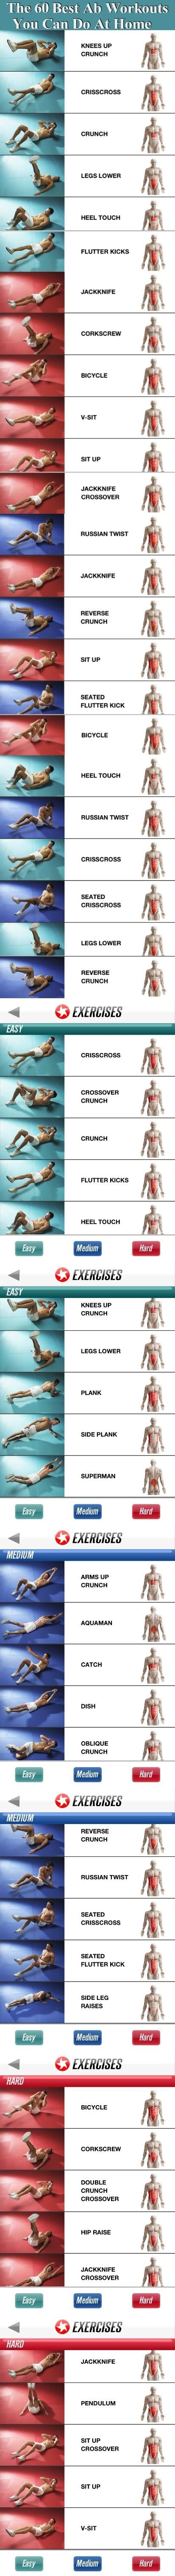 The 60 Best Ab Workouts You Can Do From Home Pictures, Photos, and Images for Facebook, Tumblr, Pinterest, and Twitter: